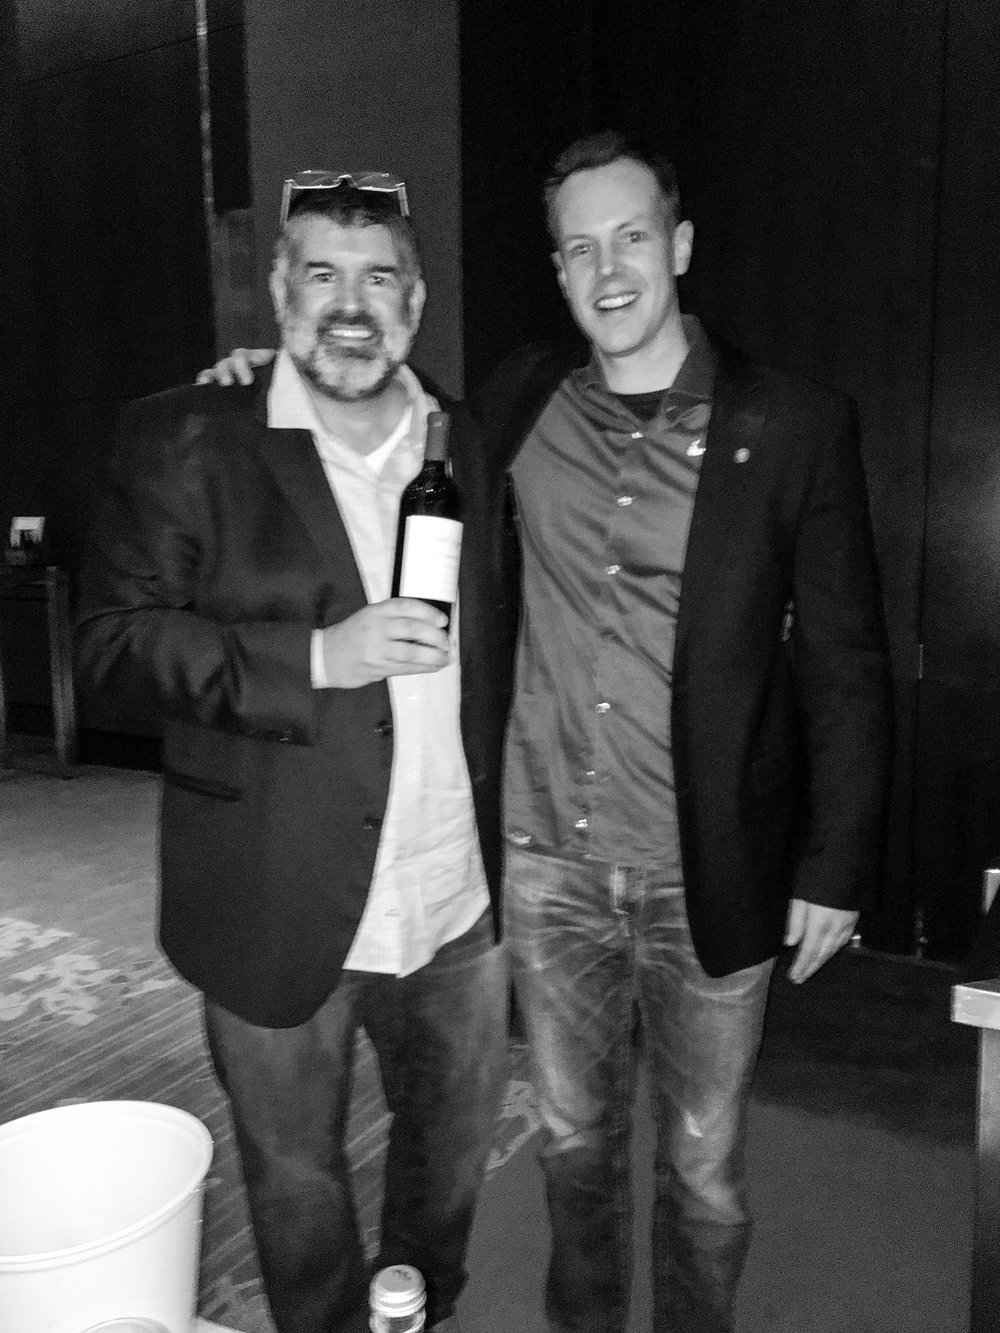 Mark McNeilly (L) is the mastermind behind Megan Anne Cellars. His releases from the warm 2015 vintage were very impressive.